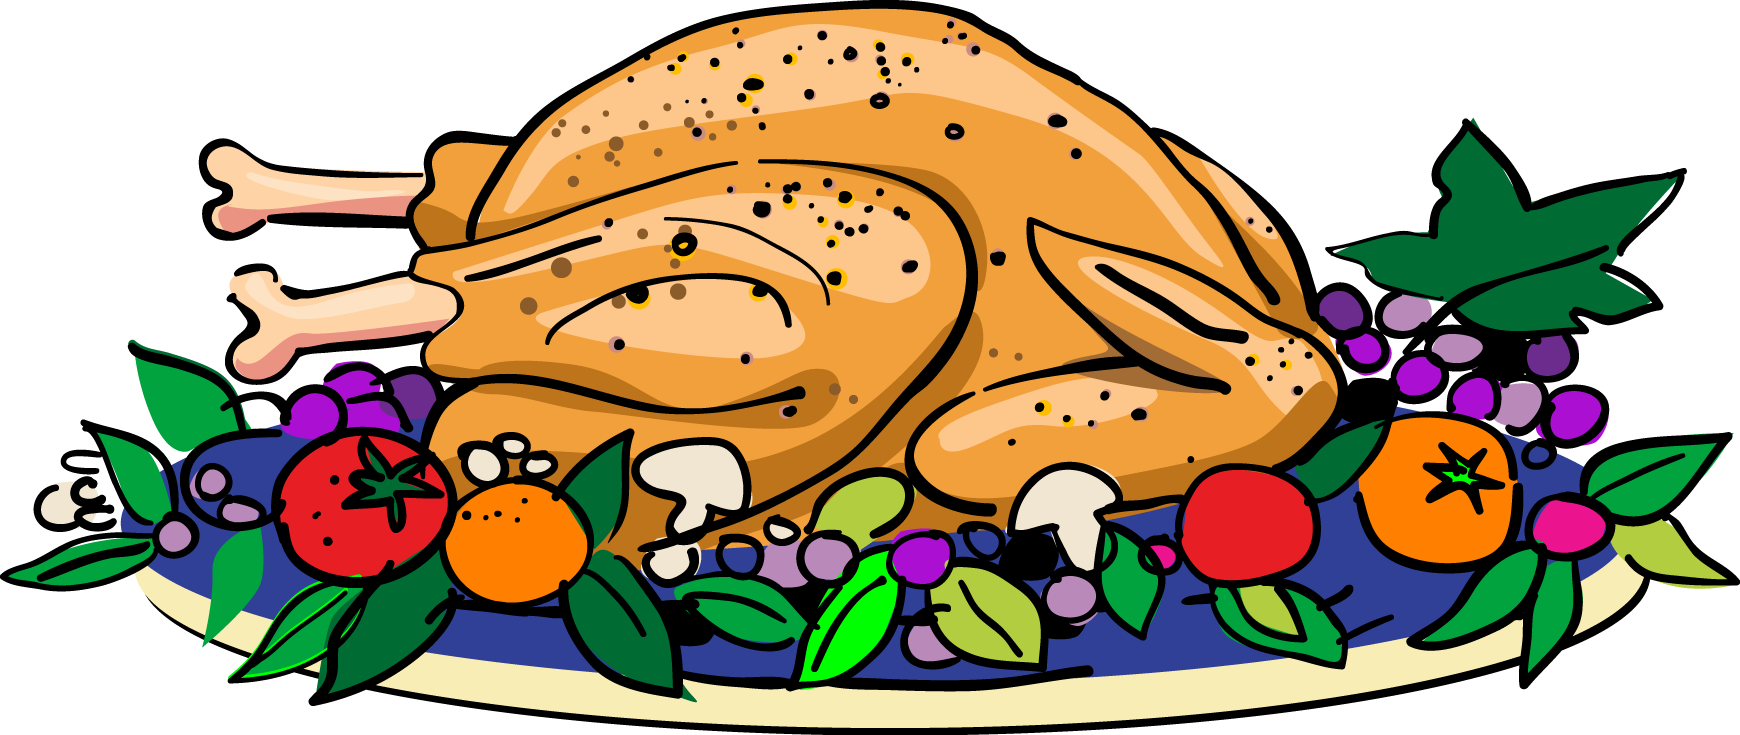 Turkey dinner clipart free images 3